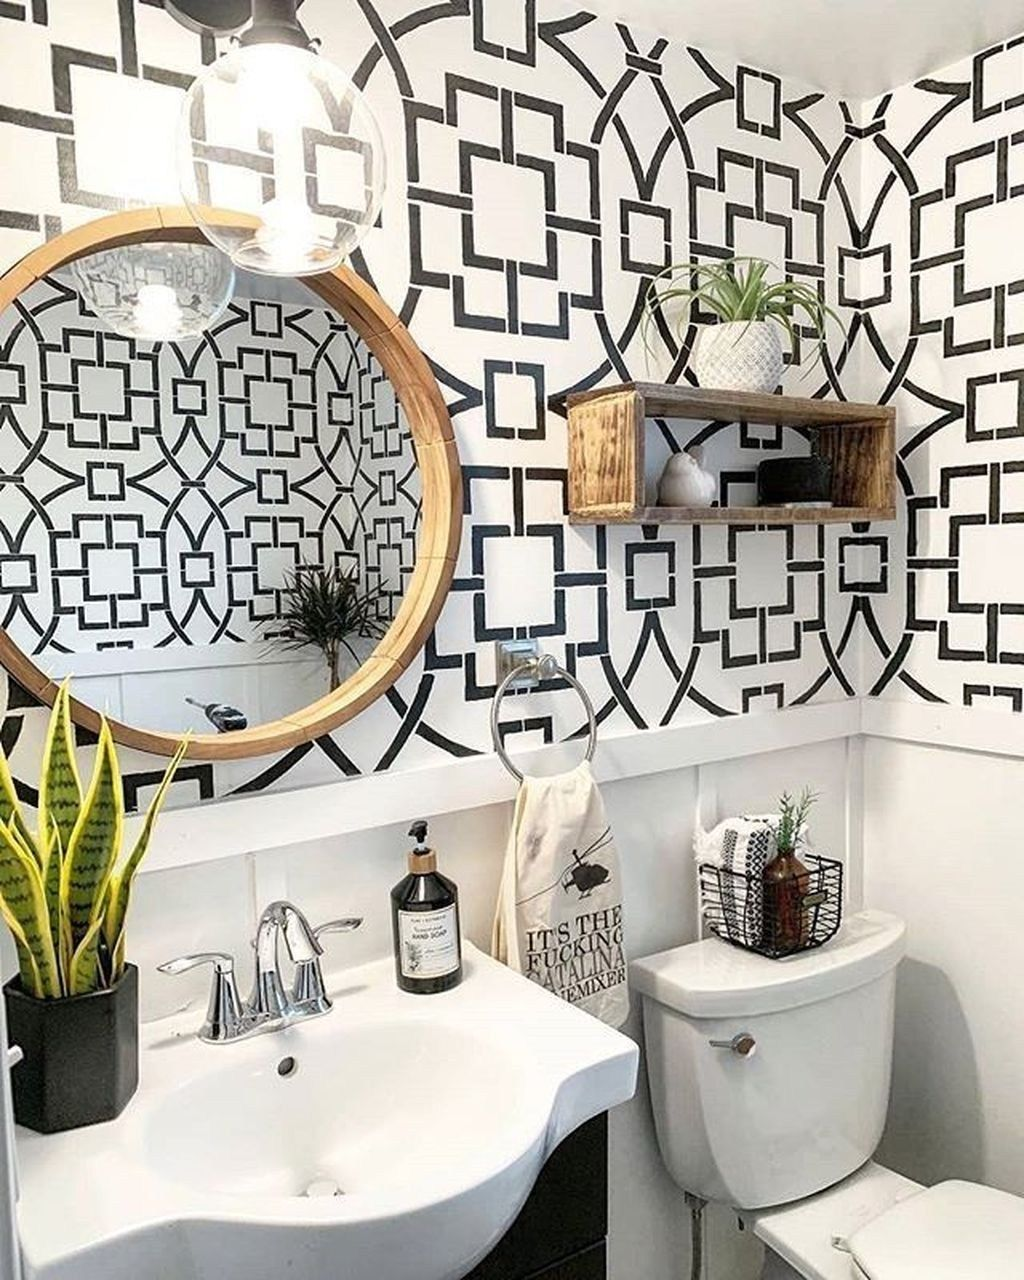 For Those Of You Who Have A Painted Or Wallpapered A Bathroom Adding Wallpaper Borders Could Half Bathroom Design Ideas Small Half Bathrooms Easy Wall Stencil